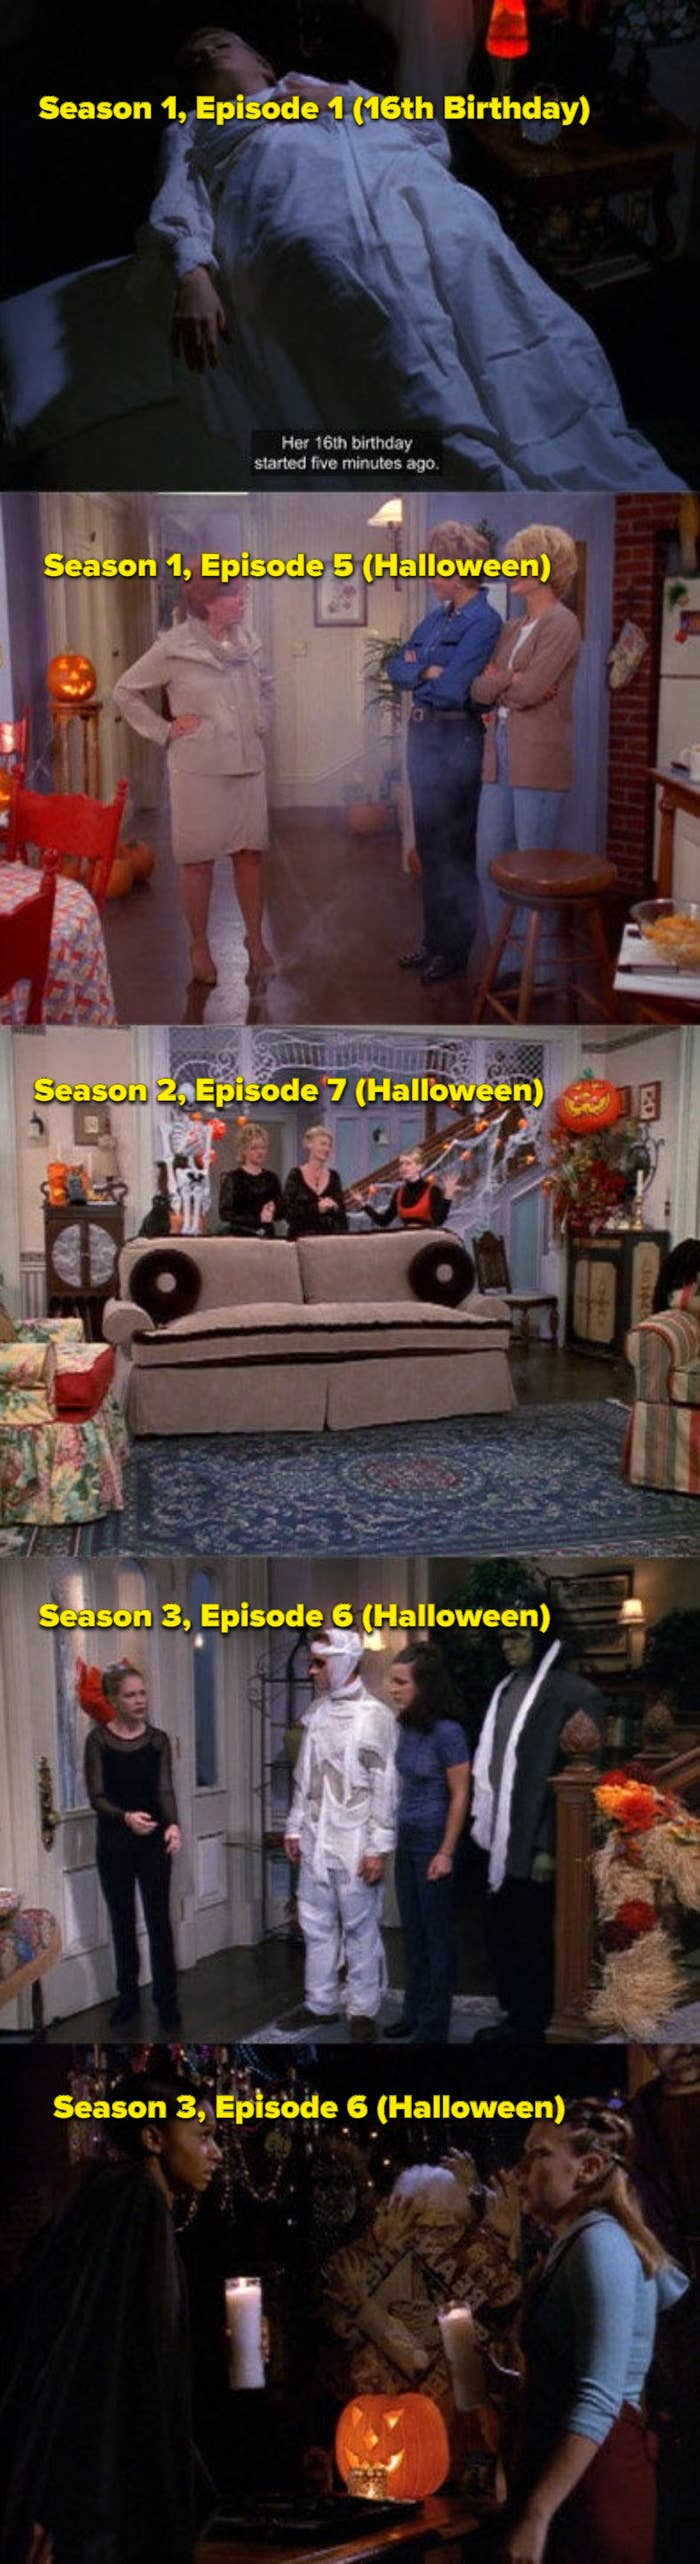 Pictures of halloween episodes from Seasons 1-4